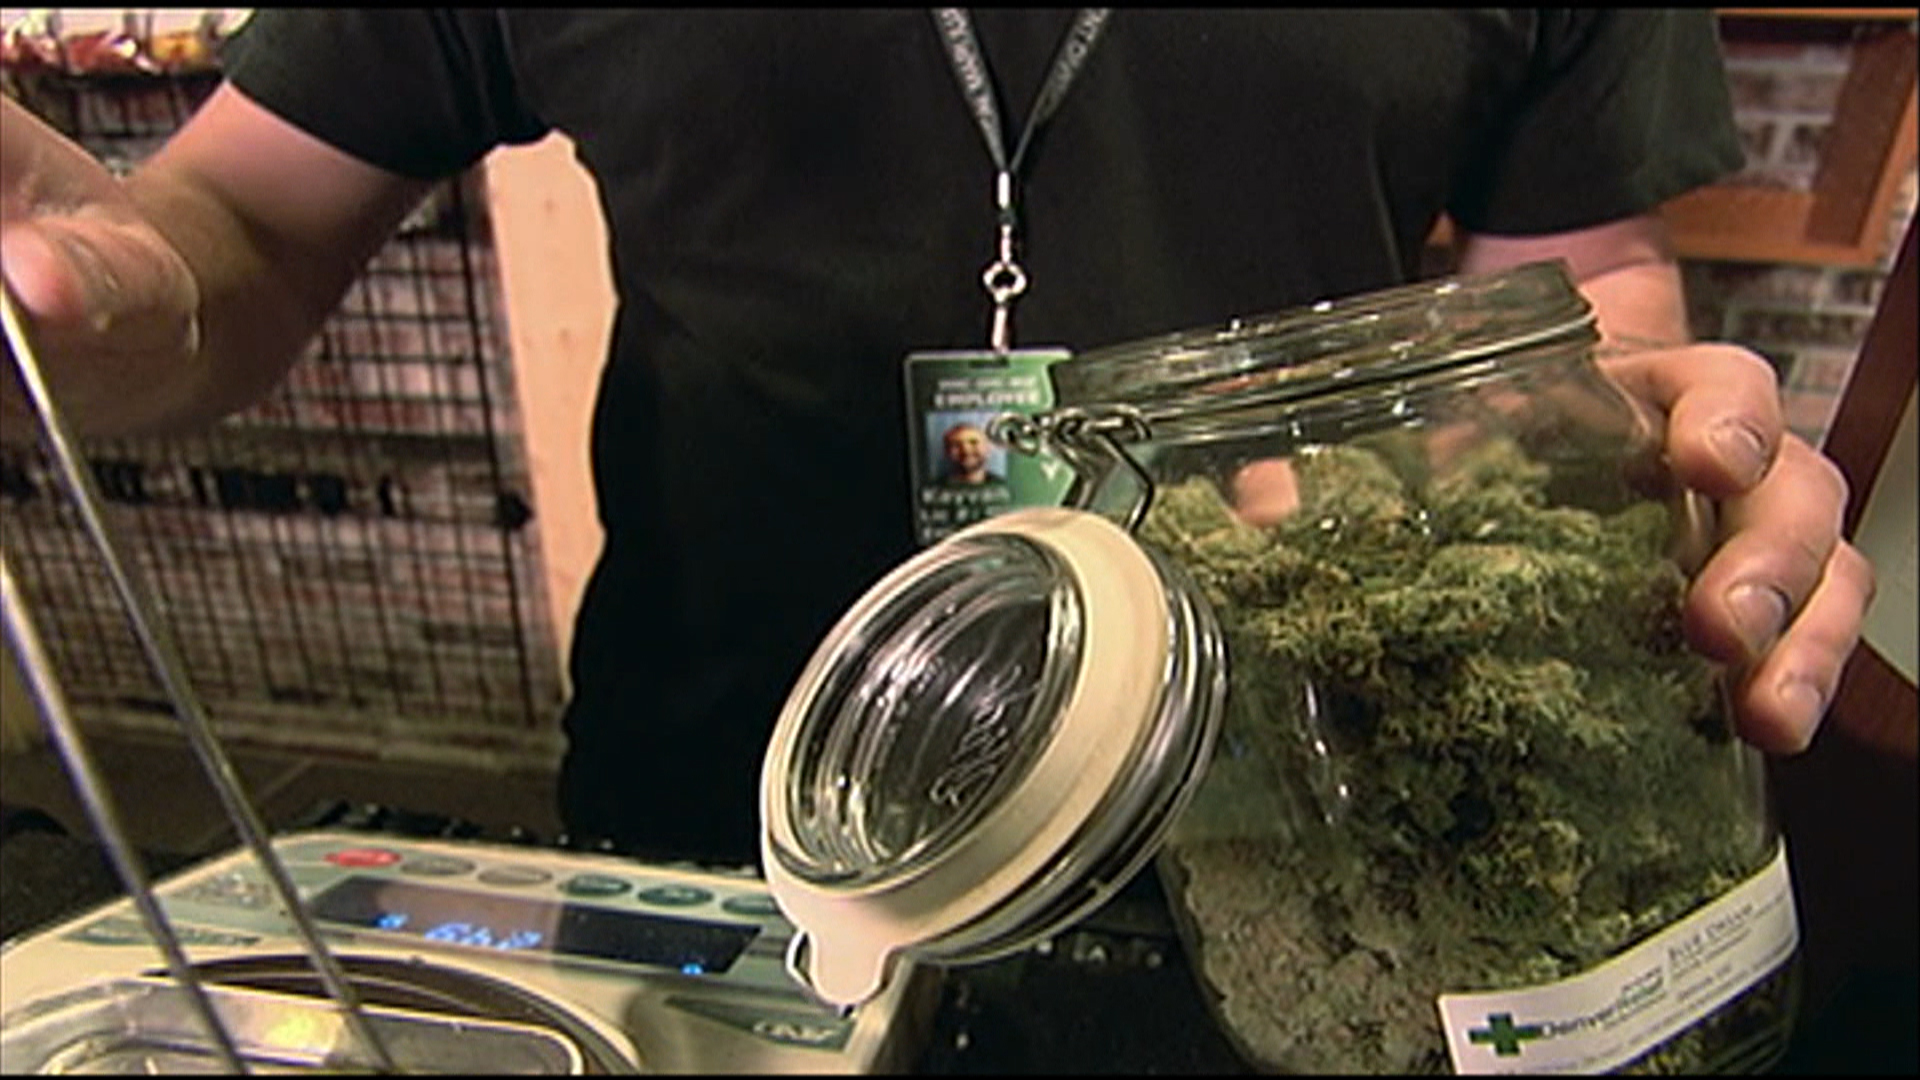 NJ to allow medical marijuana for kids. Safety still under debate